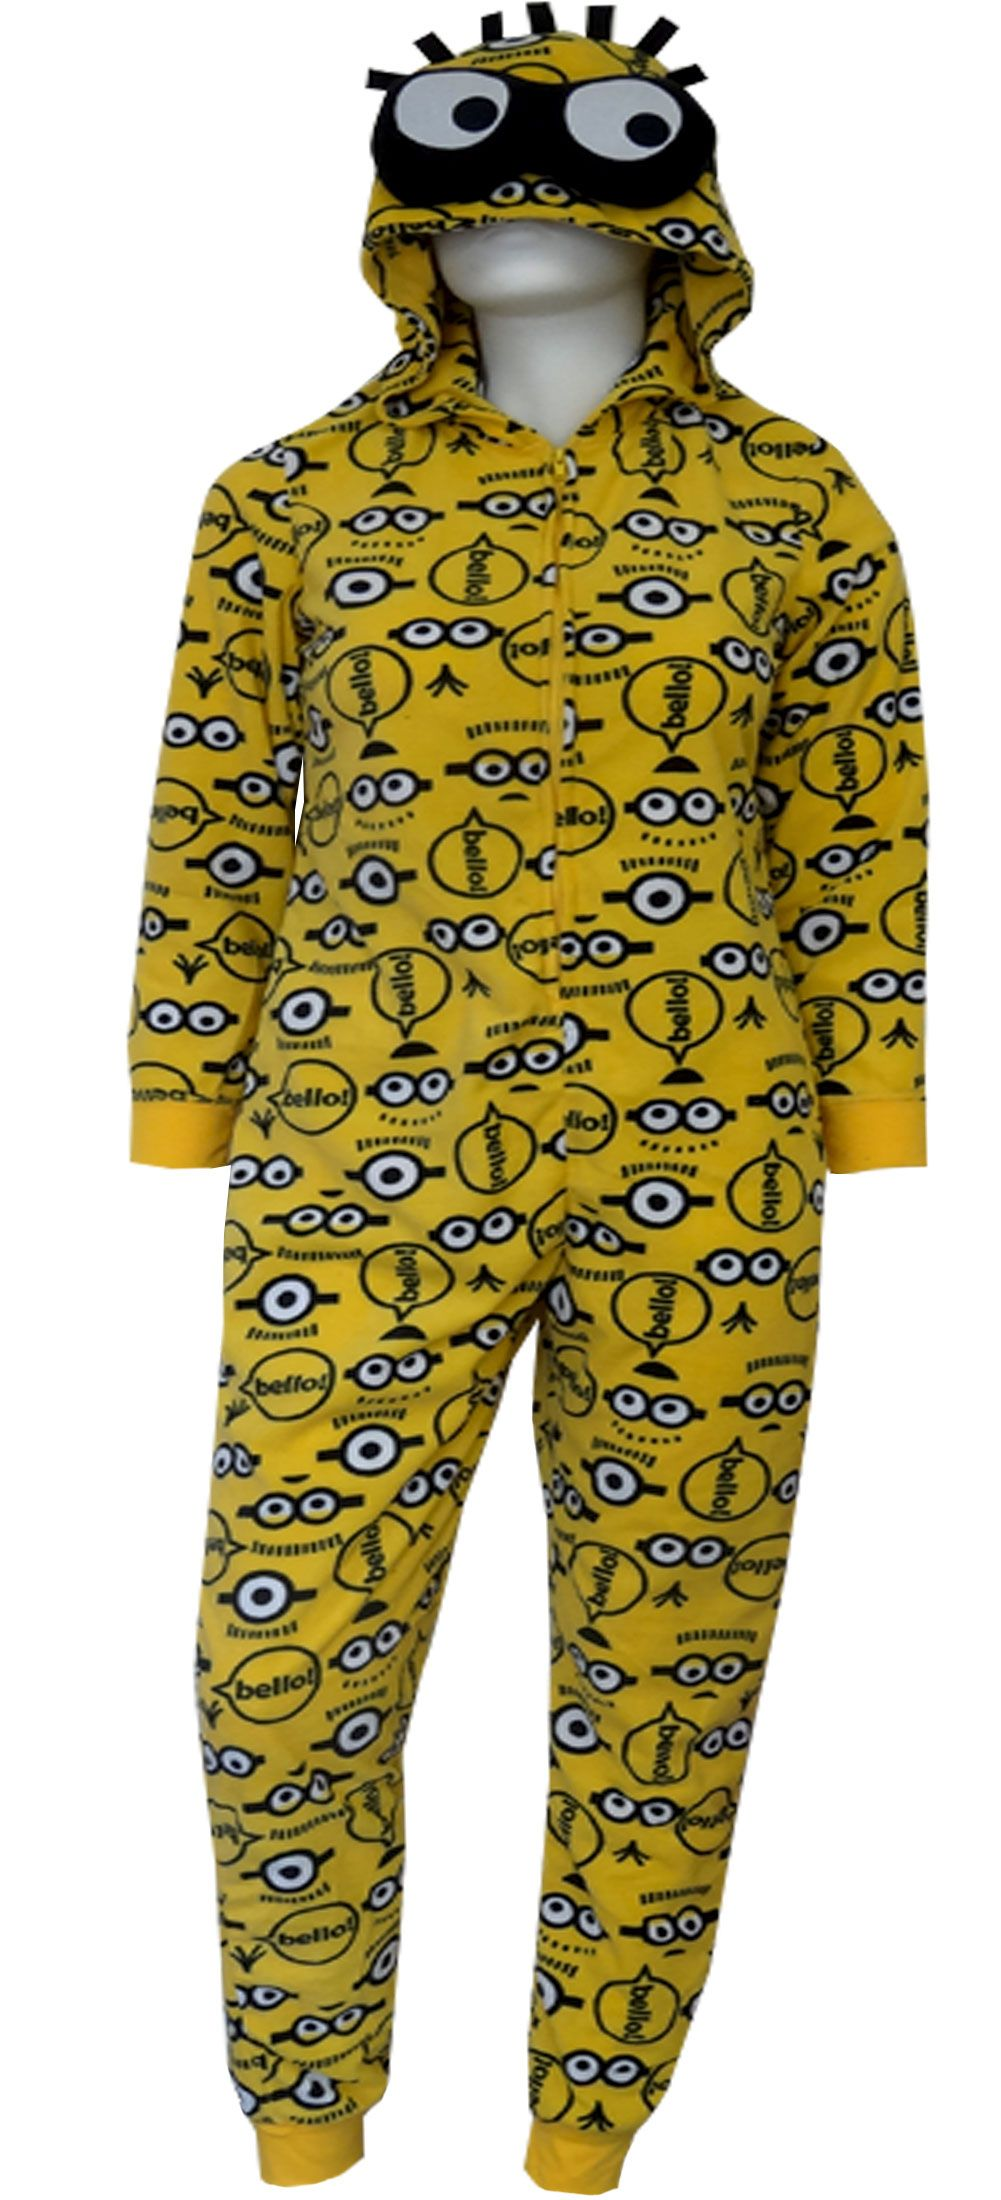 WebUndies.com Despicable Me Minion Hooded Onesie Pajama | Women's ...